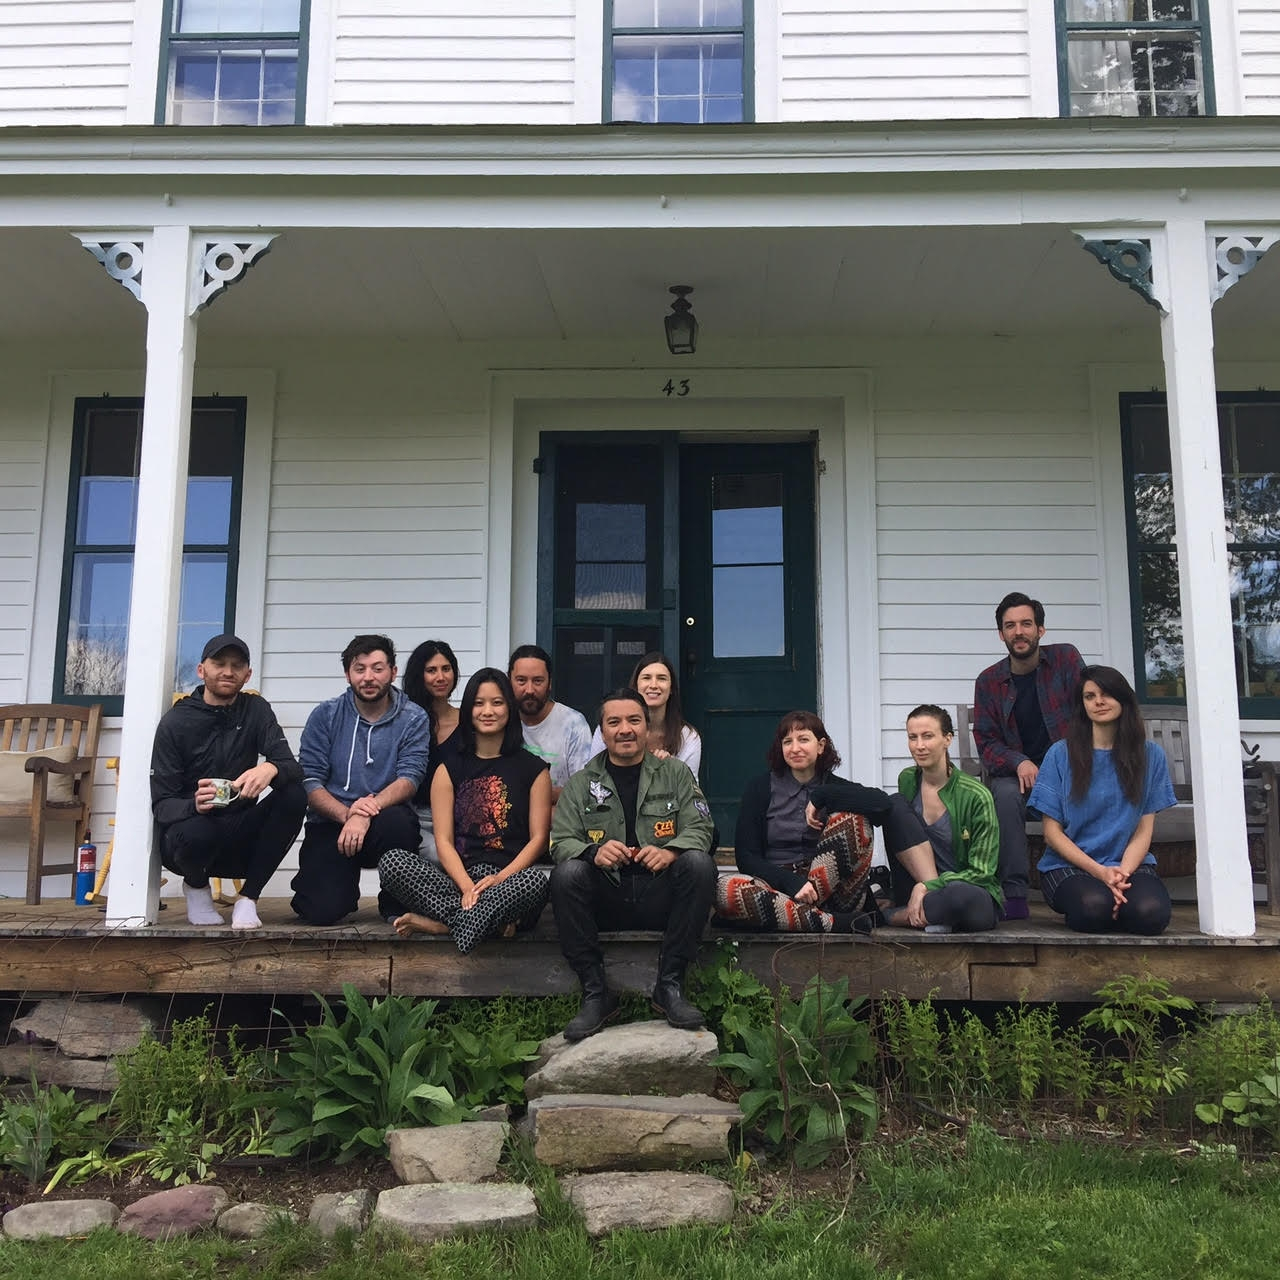 The 2017 Art & Law fellows and friends, during our usual end-of-term retreat at Denniston Hill, NY.